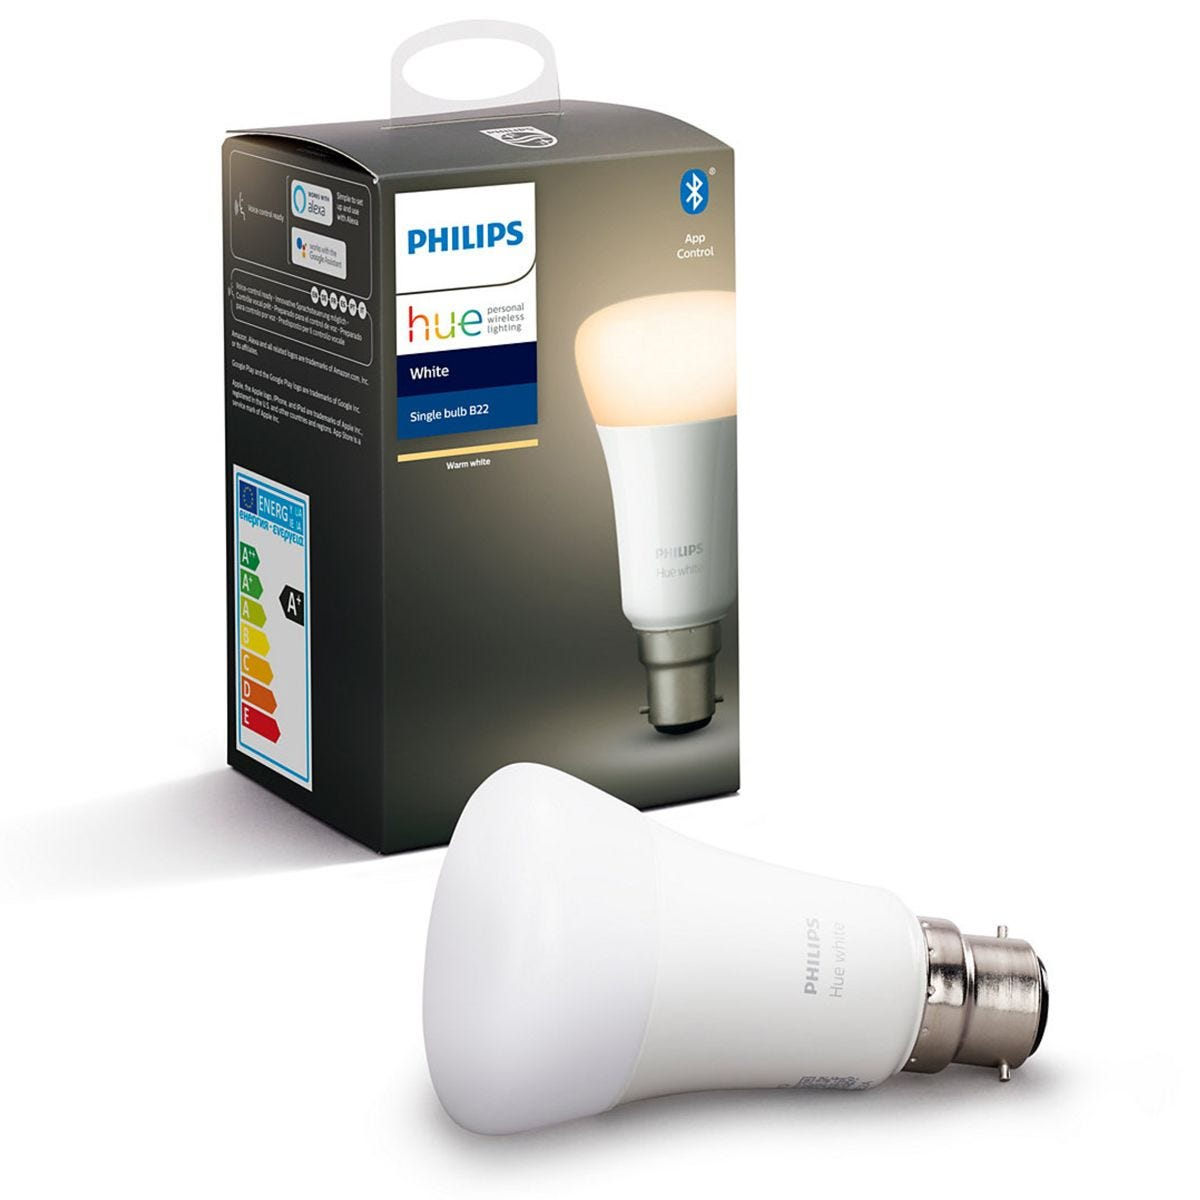 Philips Hue Smart Wi-Fi Dimmable White B22 60W Bluetooth Light Bulb